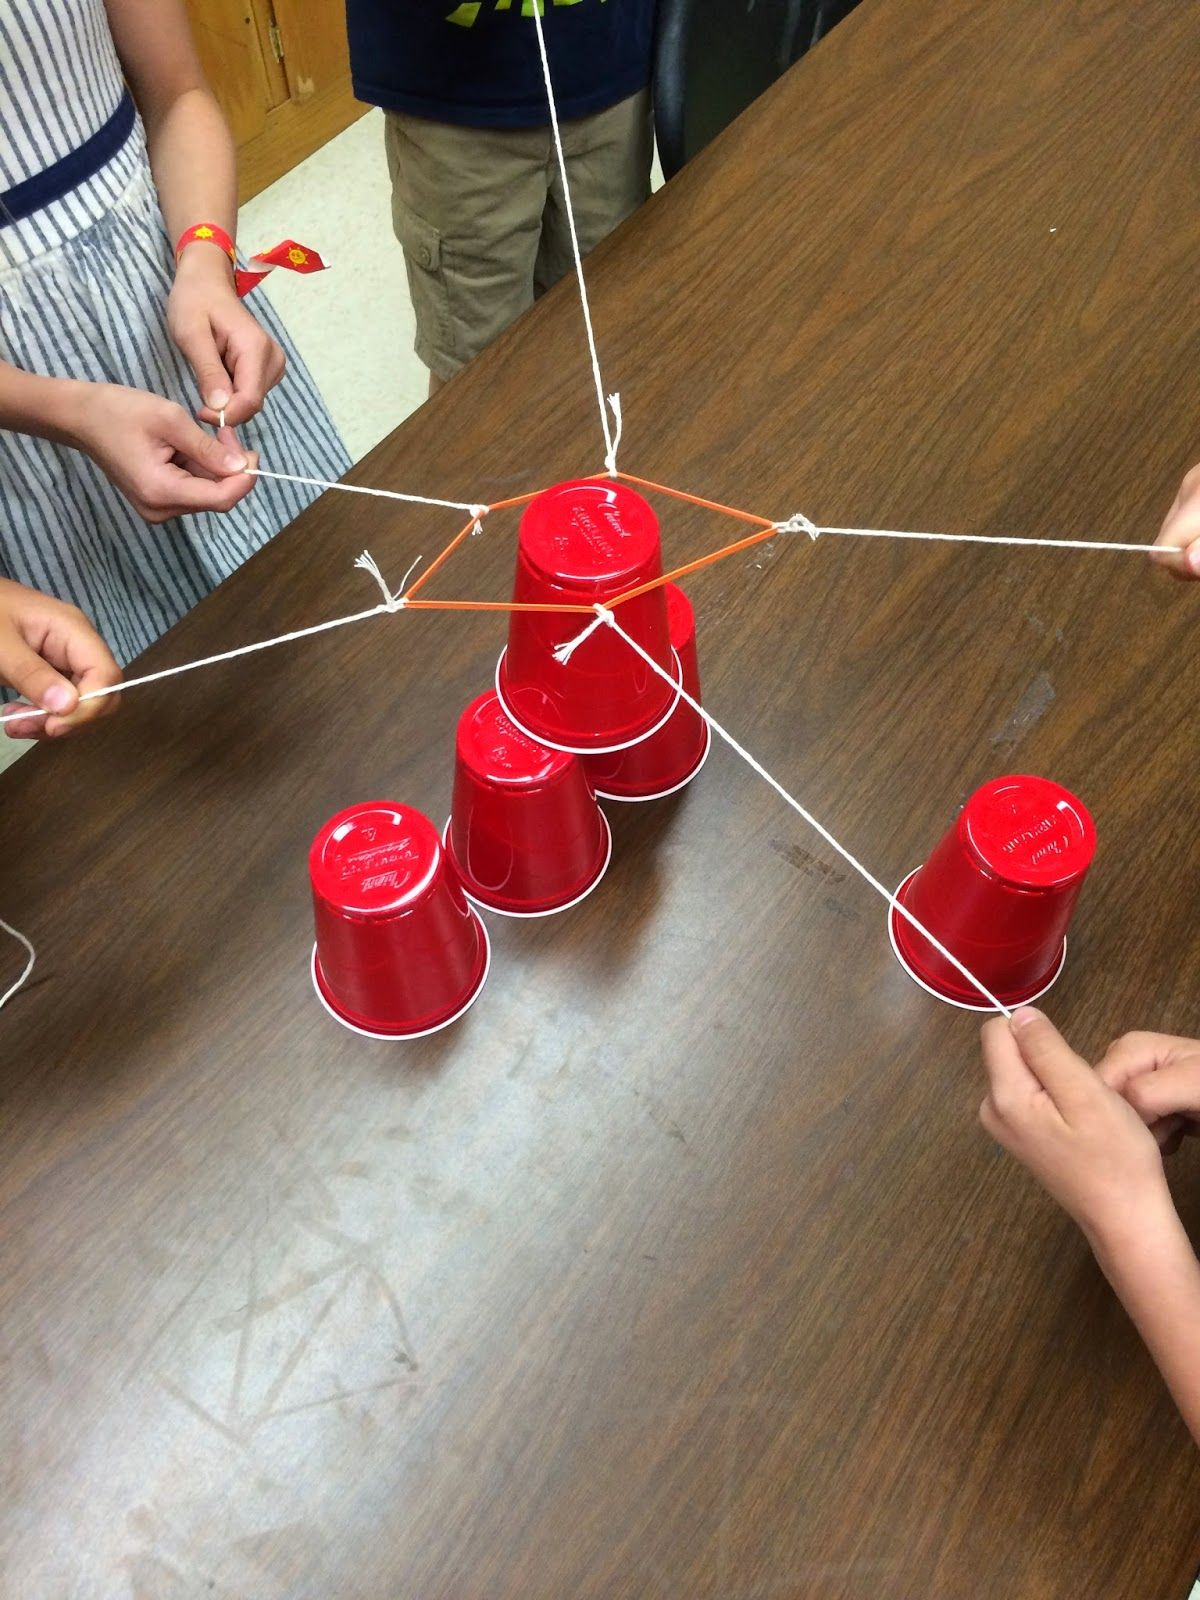 Stack Cups Team Building